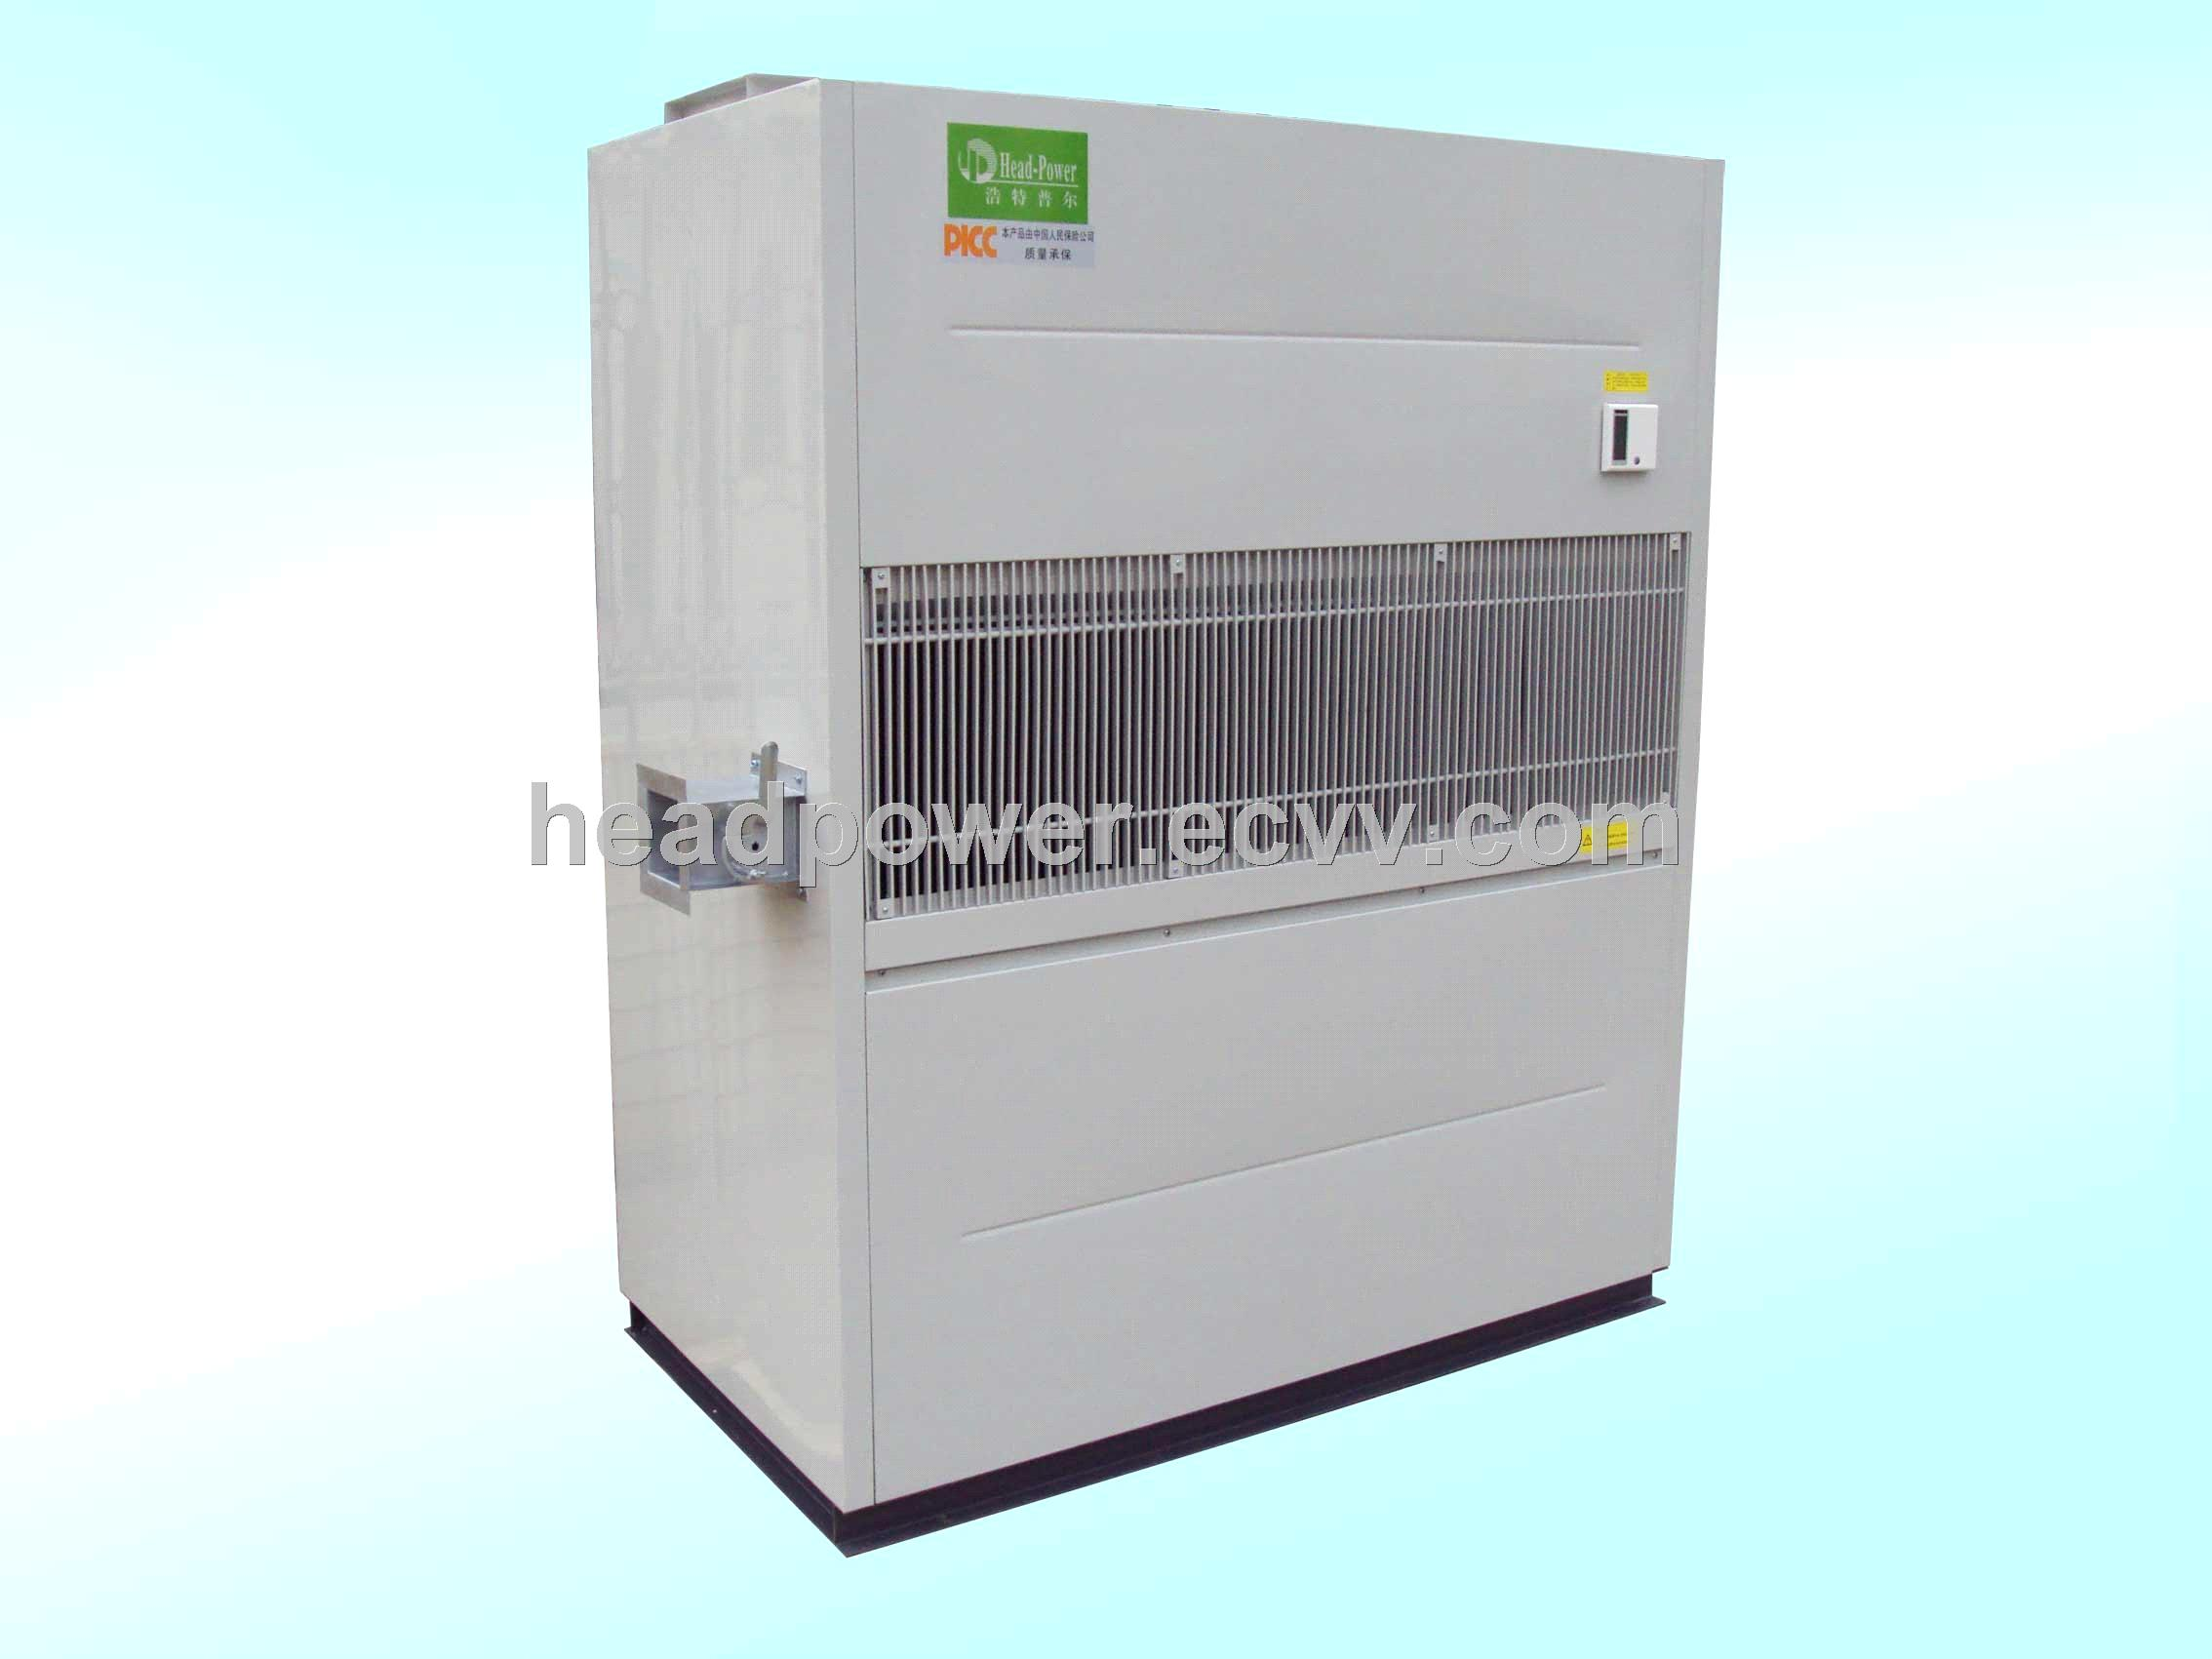 Split Type Air Conditioner (HAL) China commercial air conditioner  #4B892F